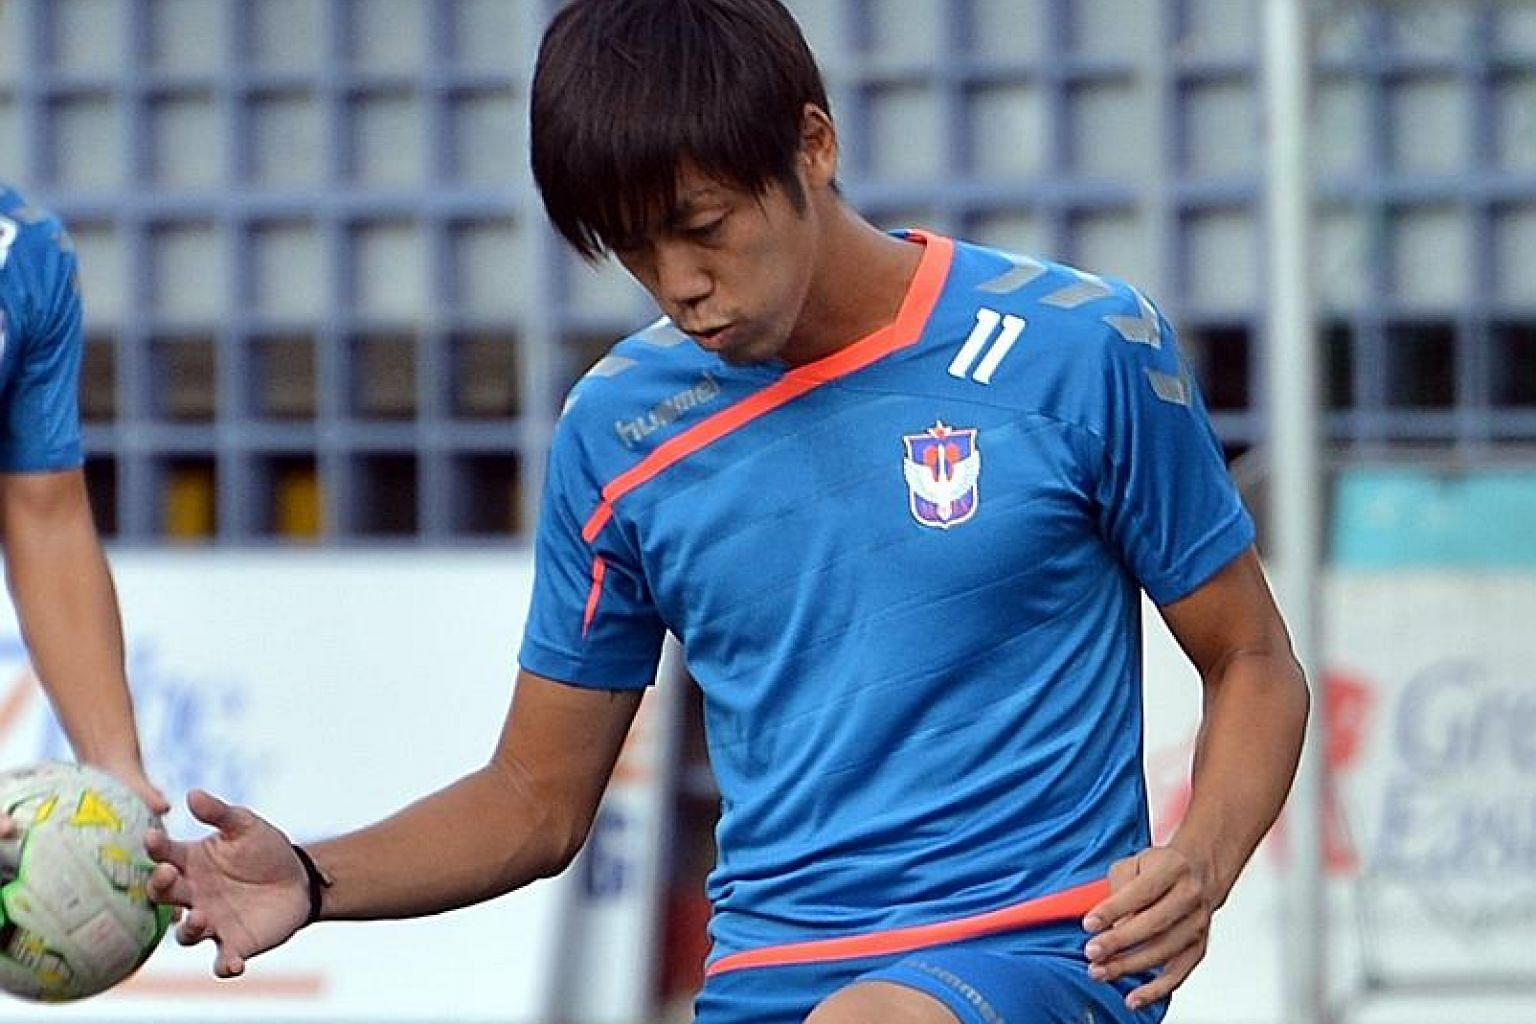 Albirex playmaker Tatsuro Inui will be keen to help widen his side's lead at the top of the table by scoring against the Tigers.